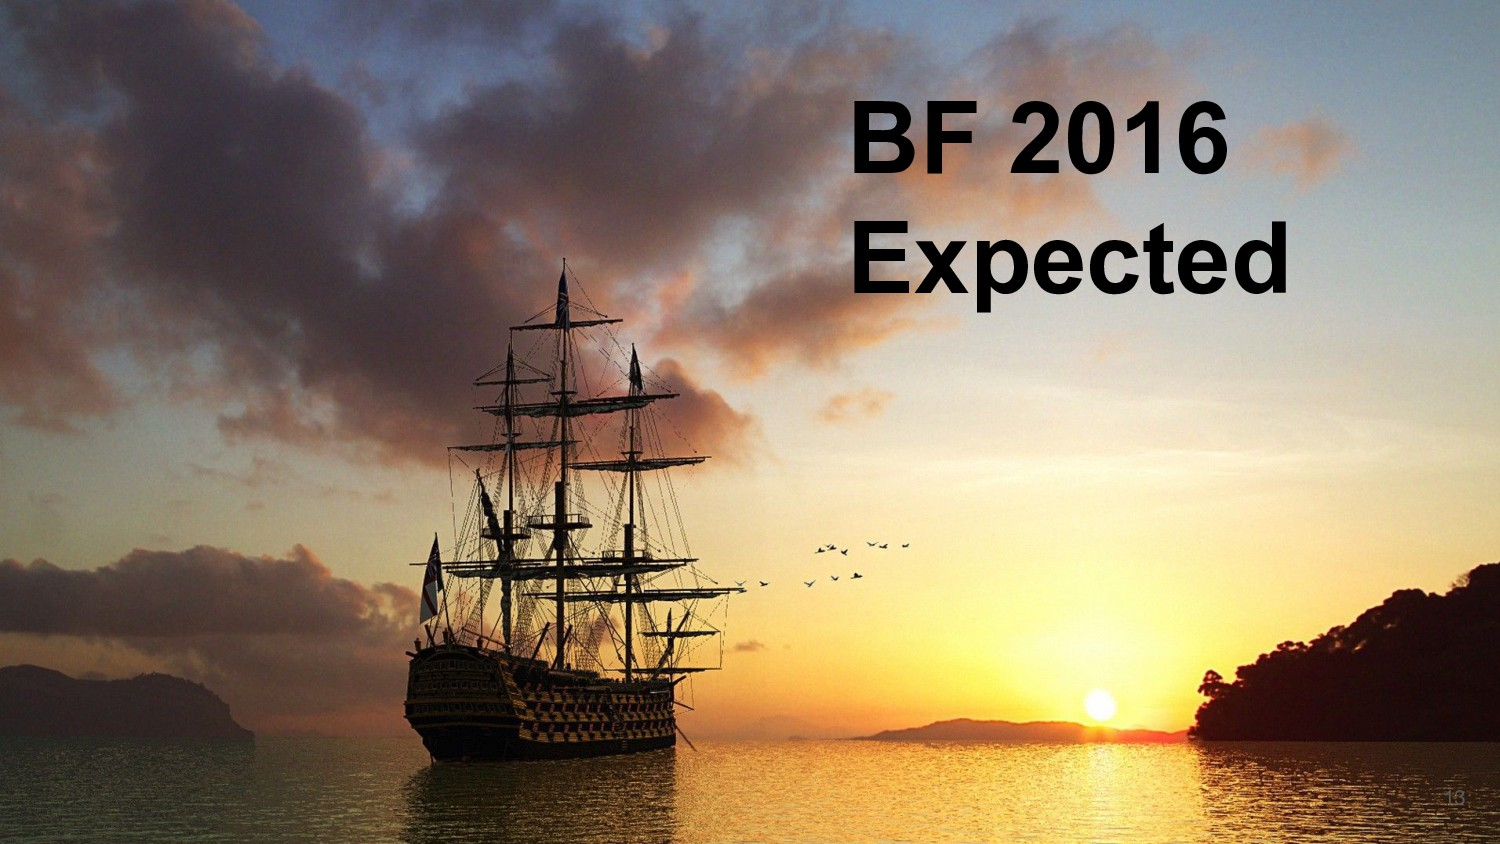 BF 2016 Expected 13